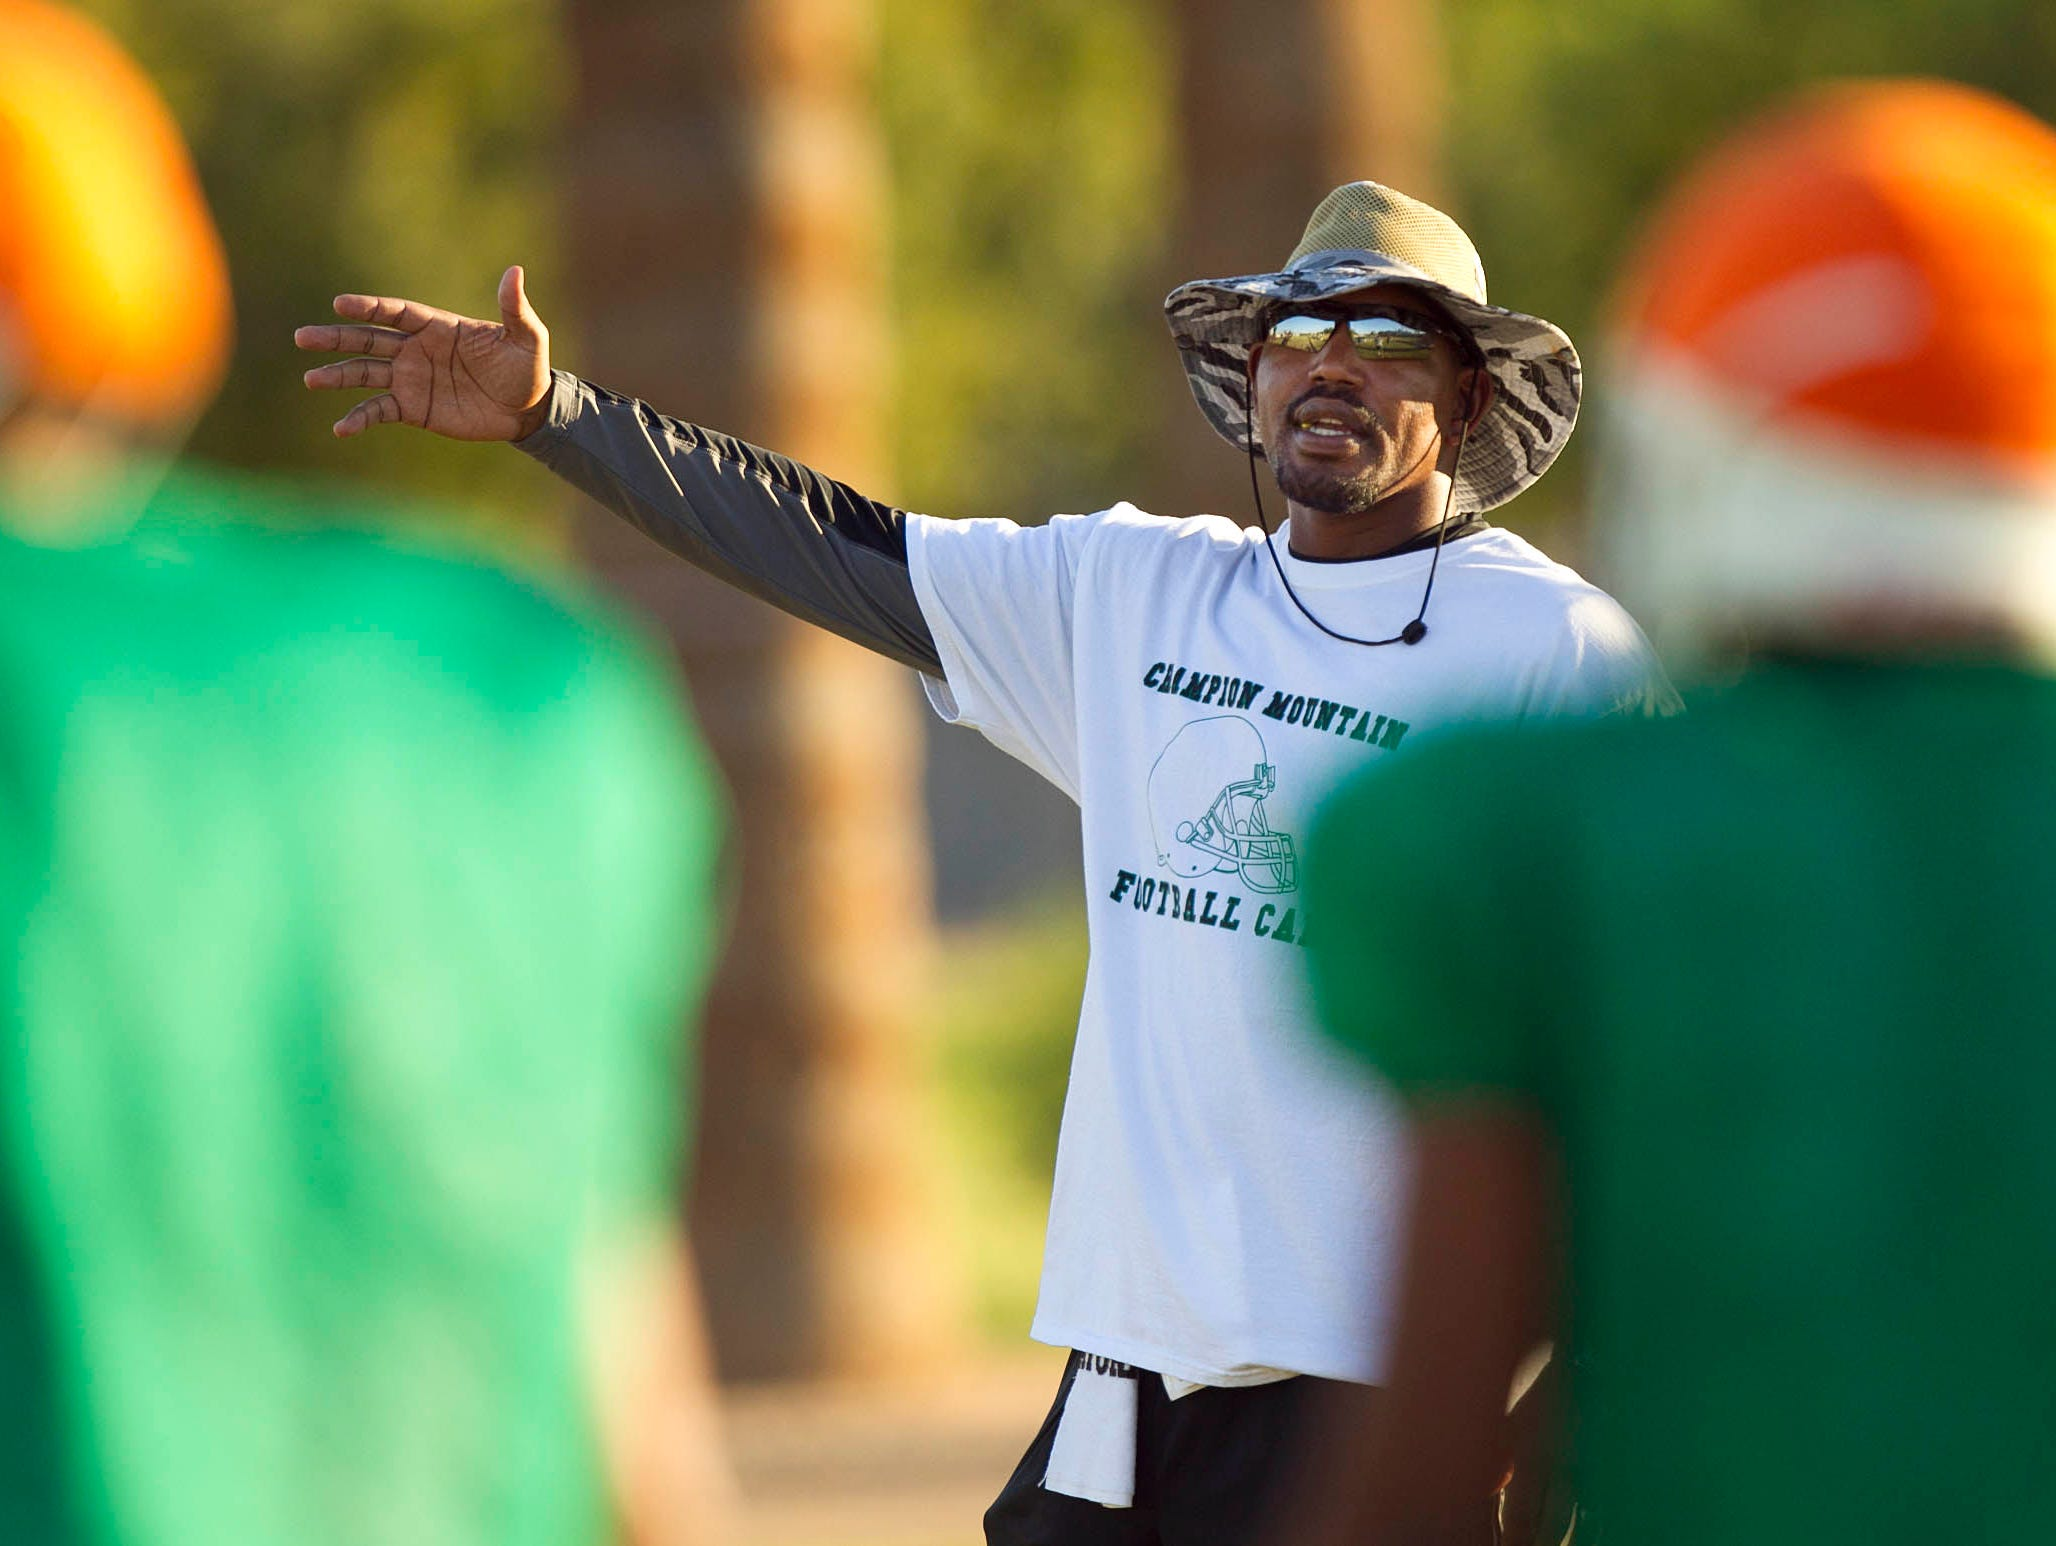 Todd Williamson puts the St. Mary'??s football team through practice on Monday, Oct. 1, 2012 in Phoenix.